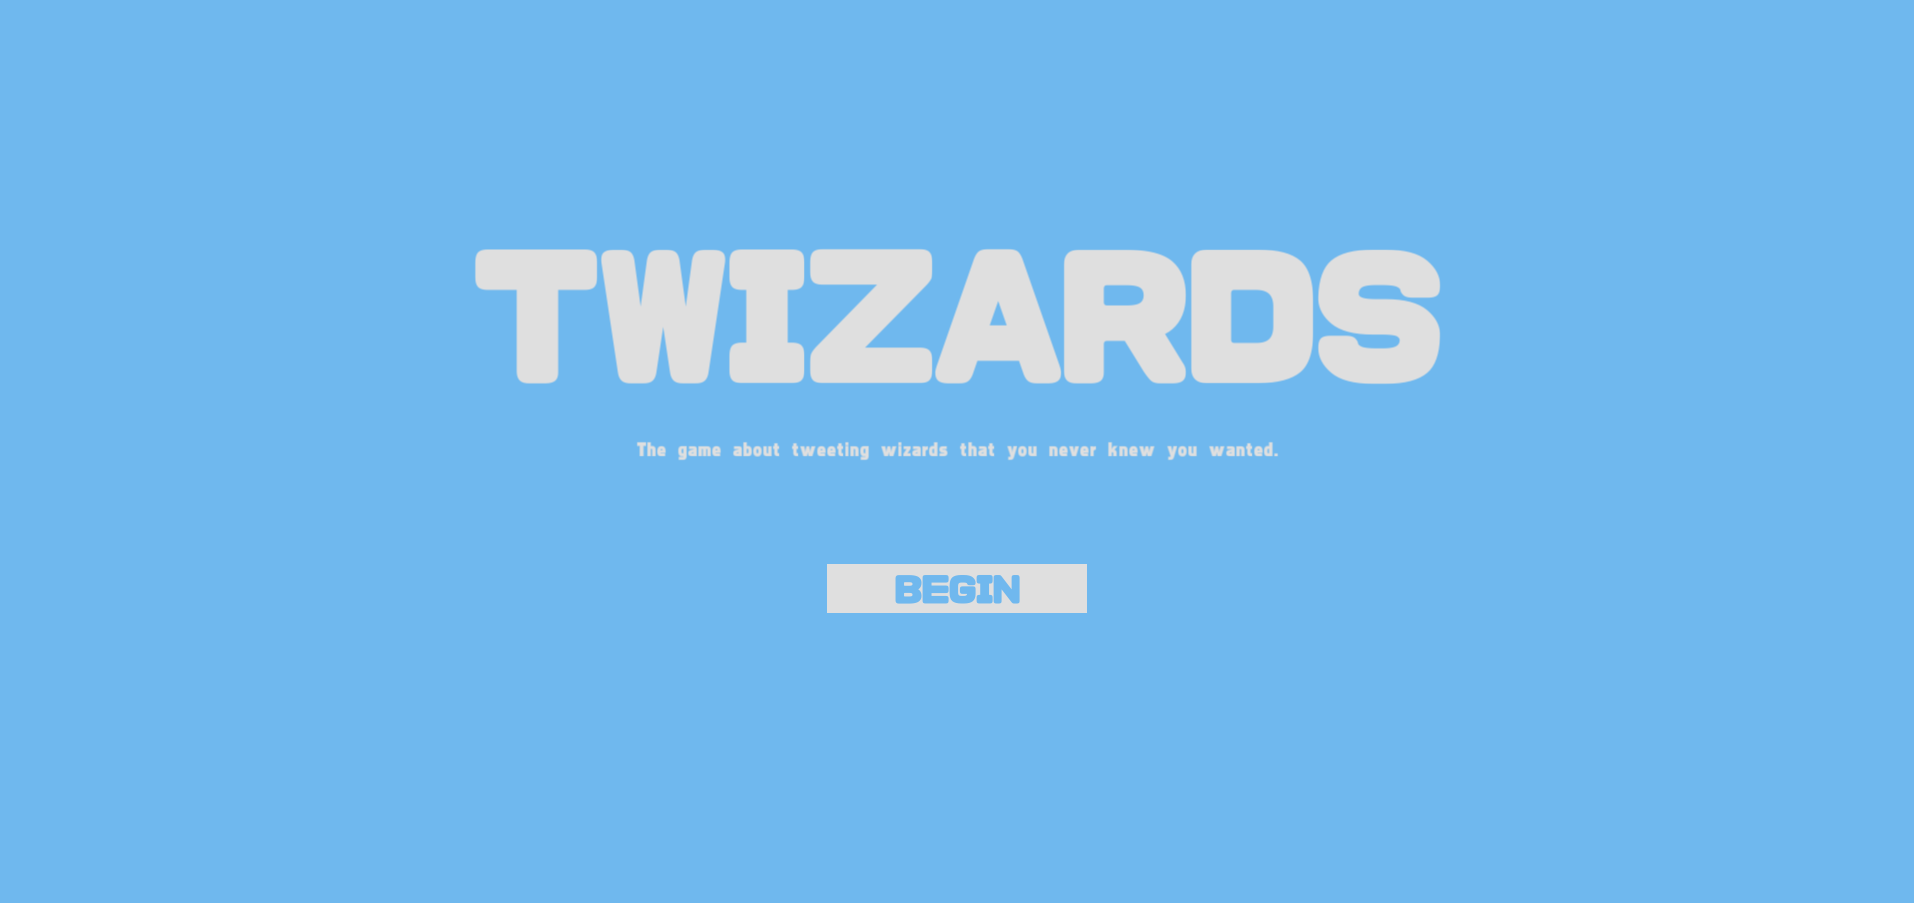 Twizards